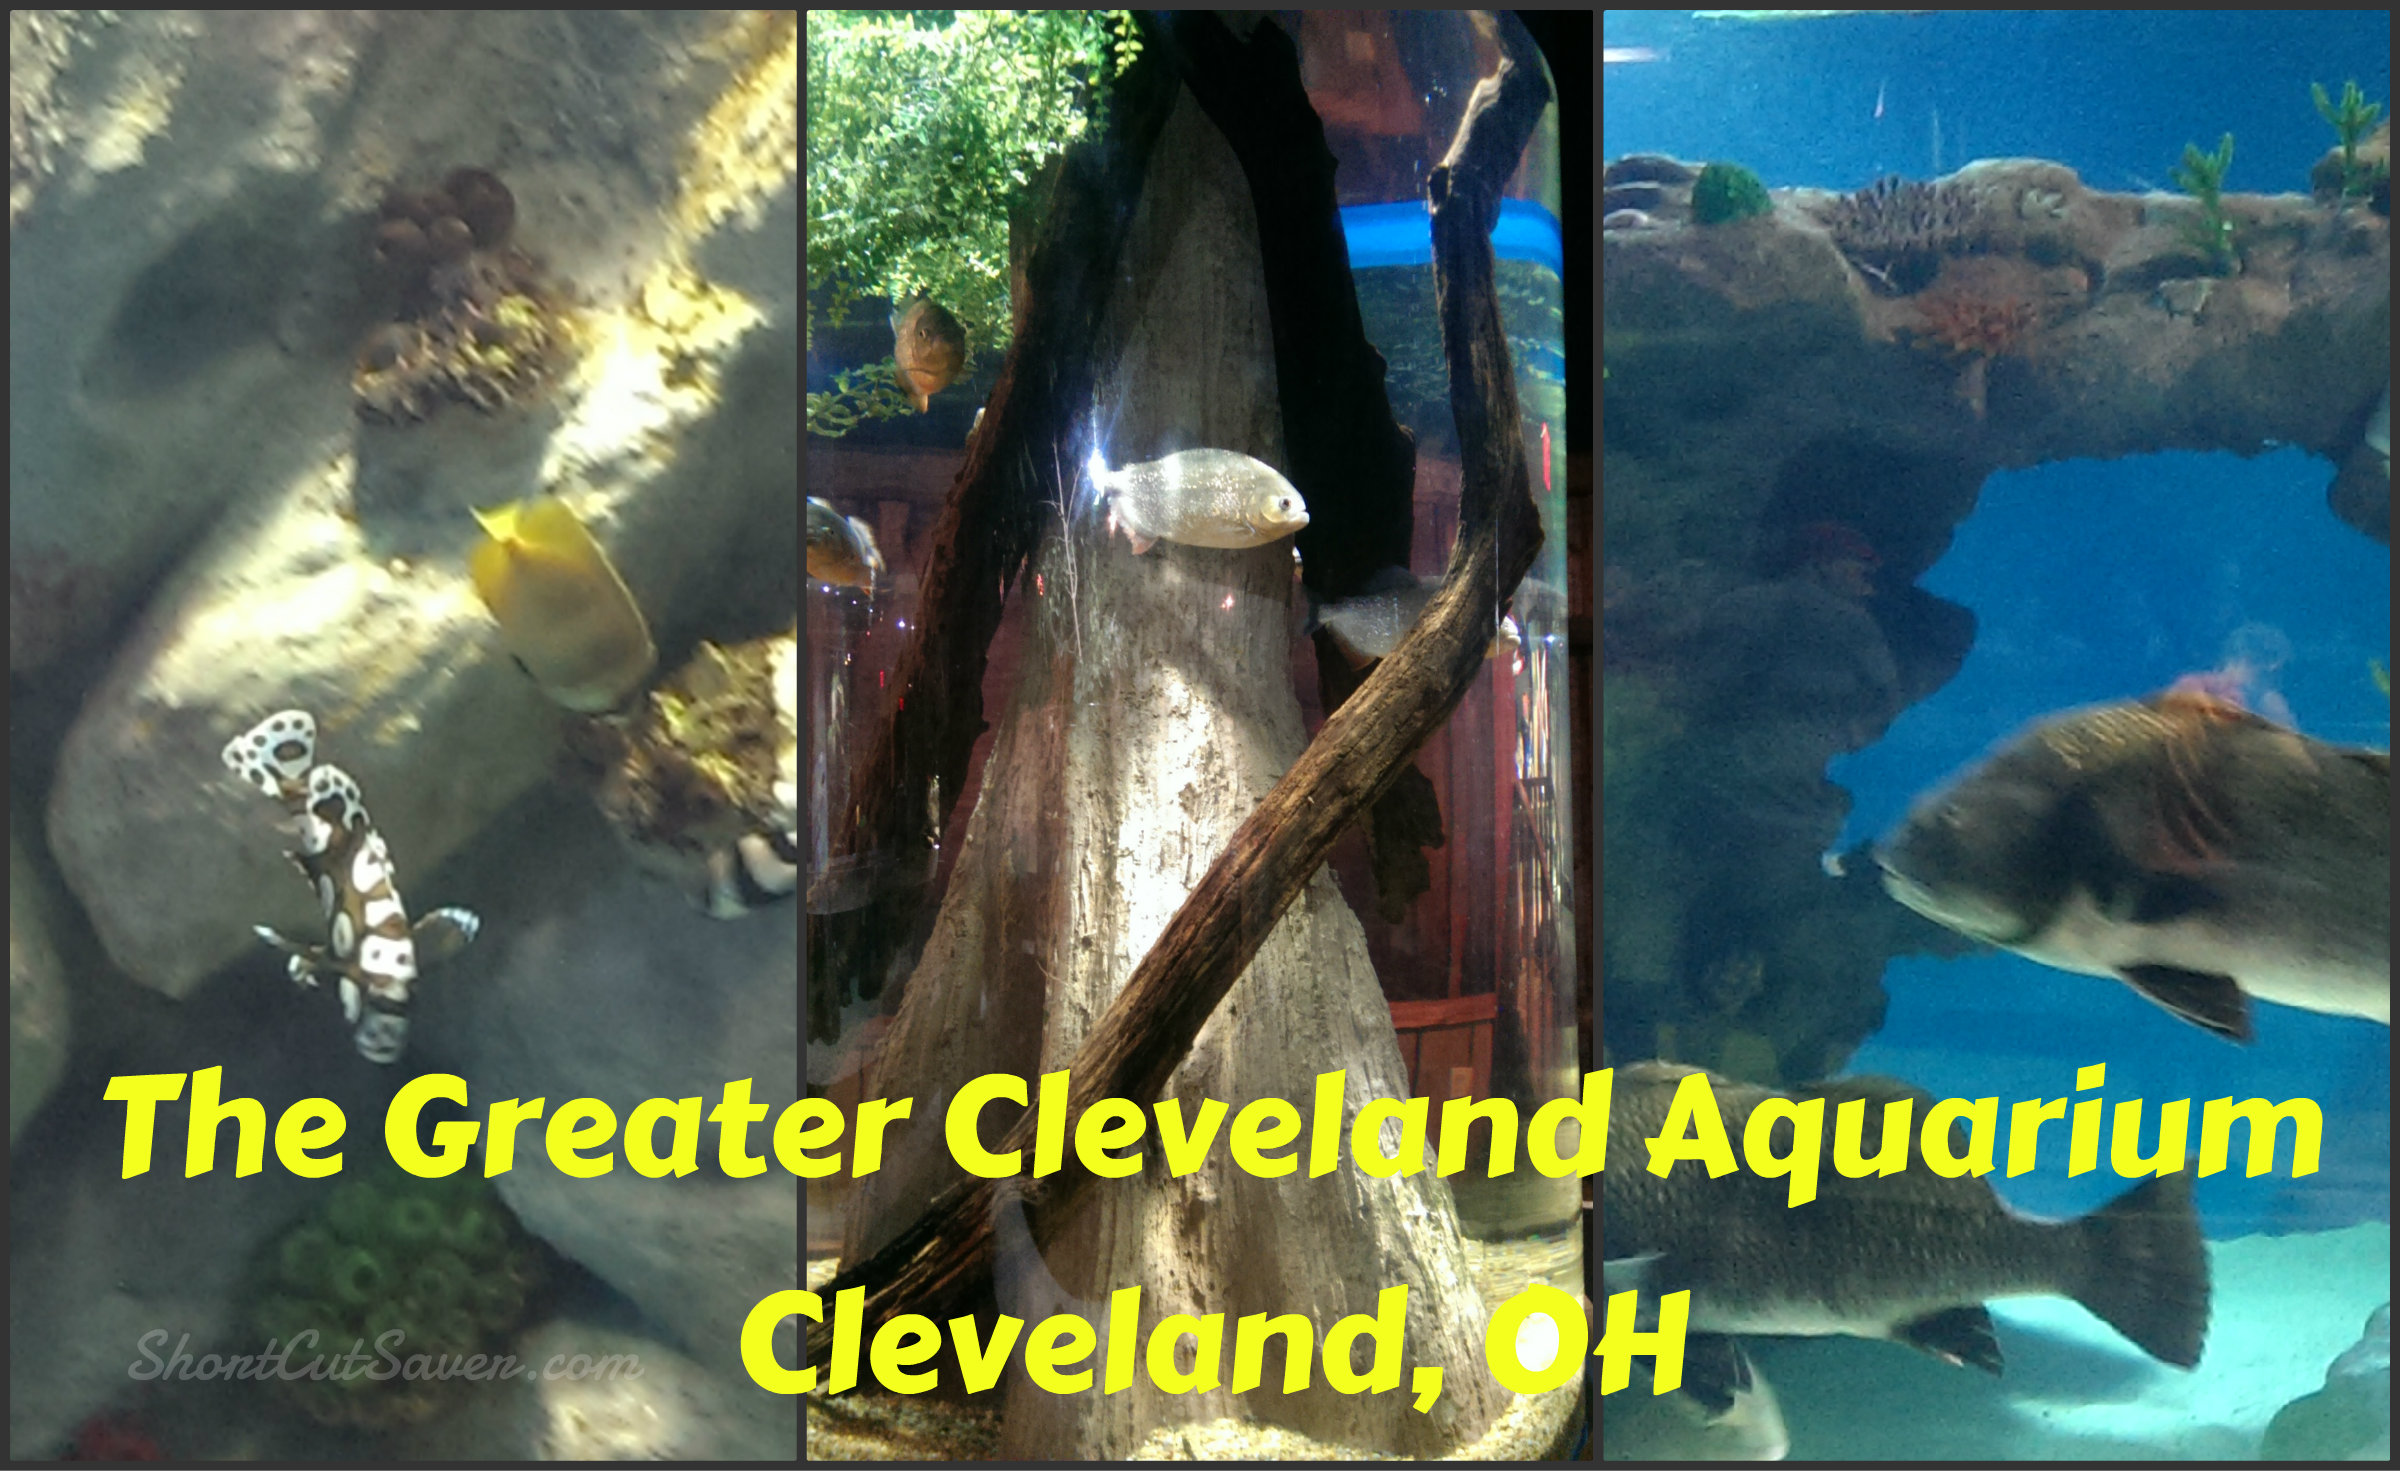 Greater Cleveland Aquarium: 10 Of Our Favorite Things To Do In Ohio | State By State Travel